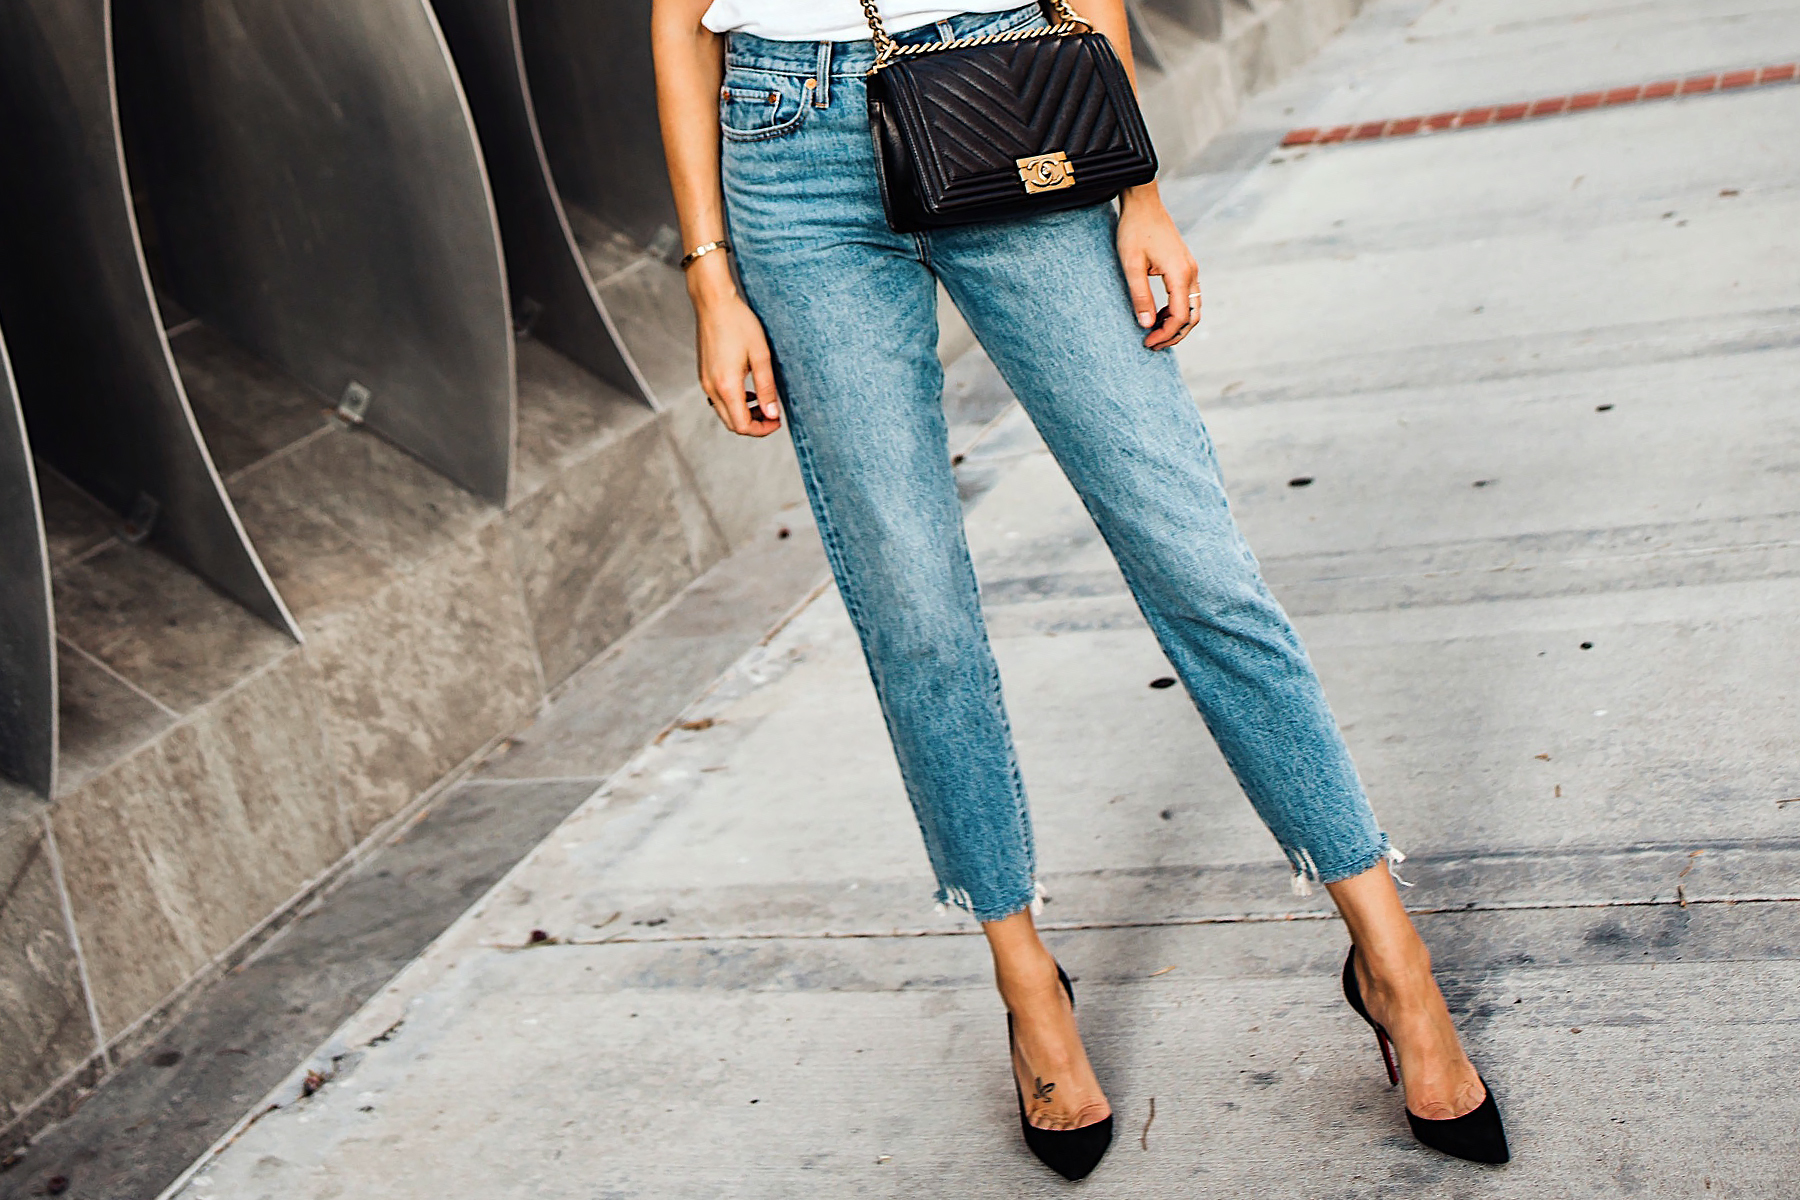 Woman Wearing Levis Wedgie Jeans Christian Louboutin Black Pumps Fashion Jackson San Diego Fashion Blogger Street Style